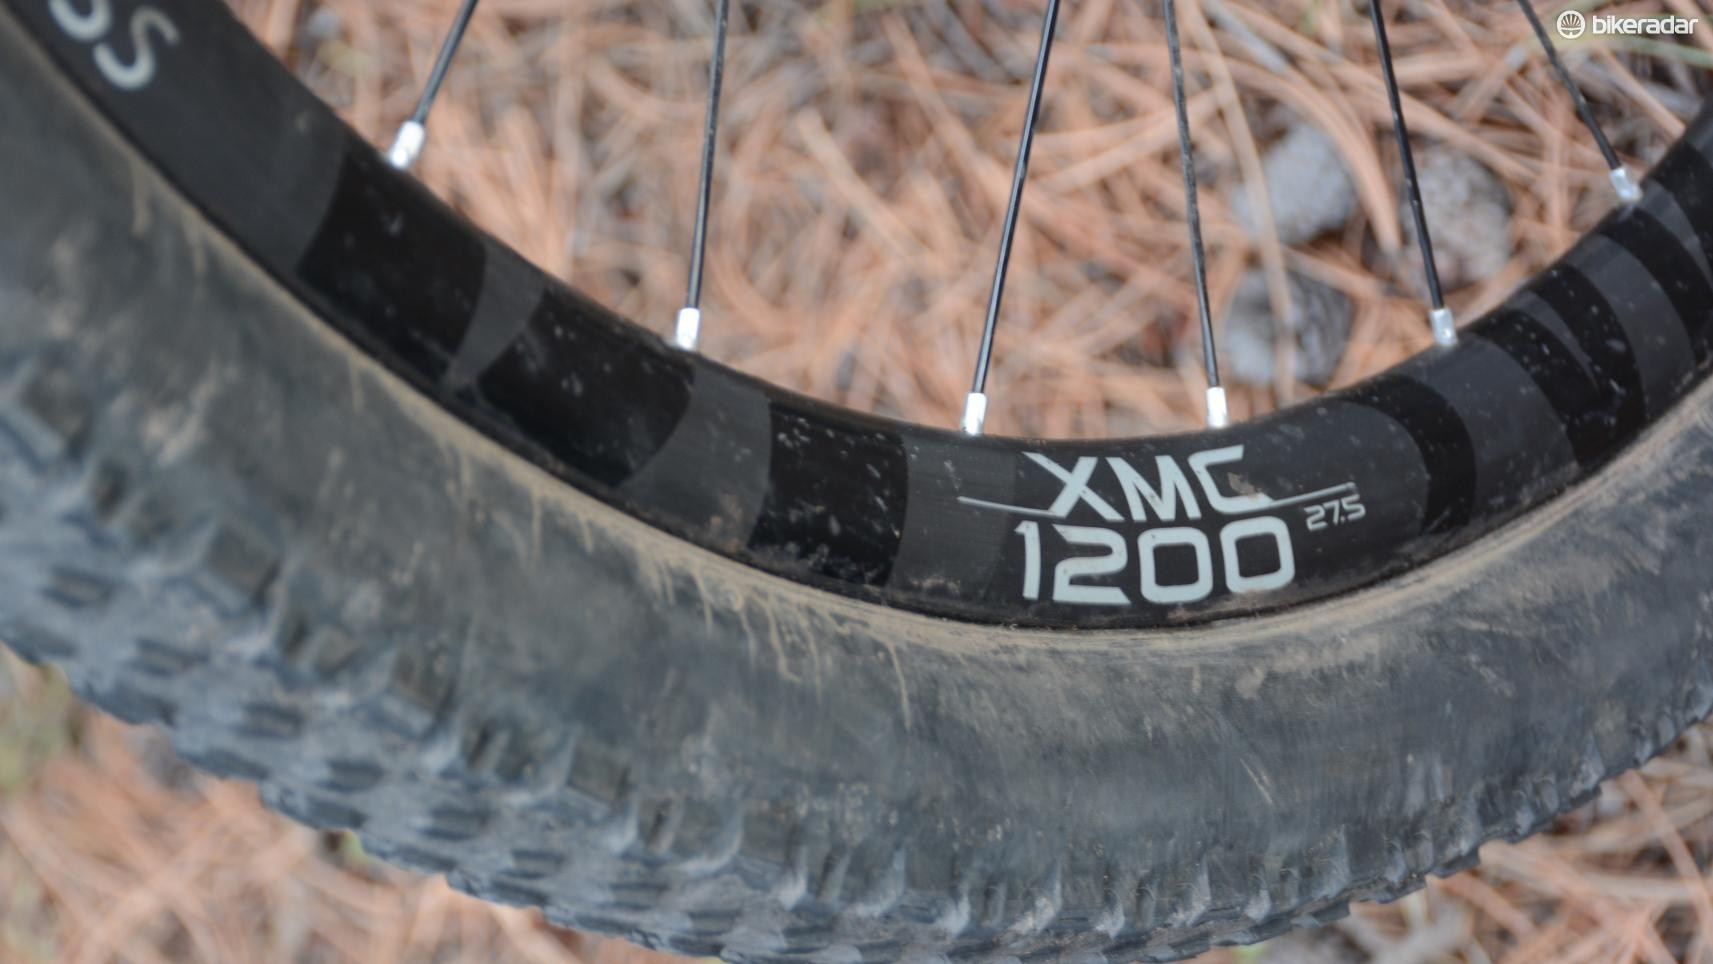 These DT Swiss XMC 1200 wheels surprised and impressed me